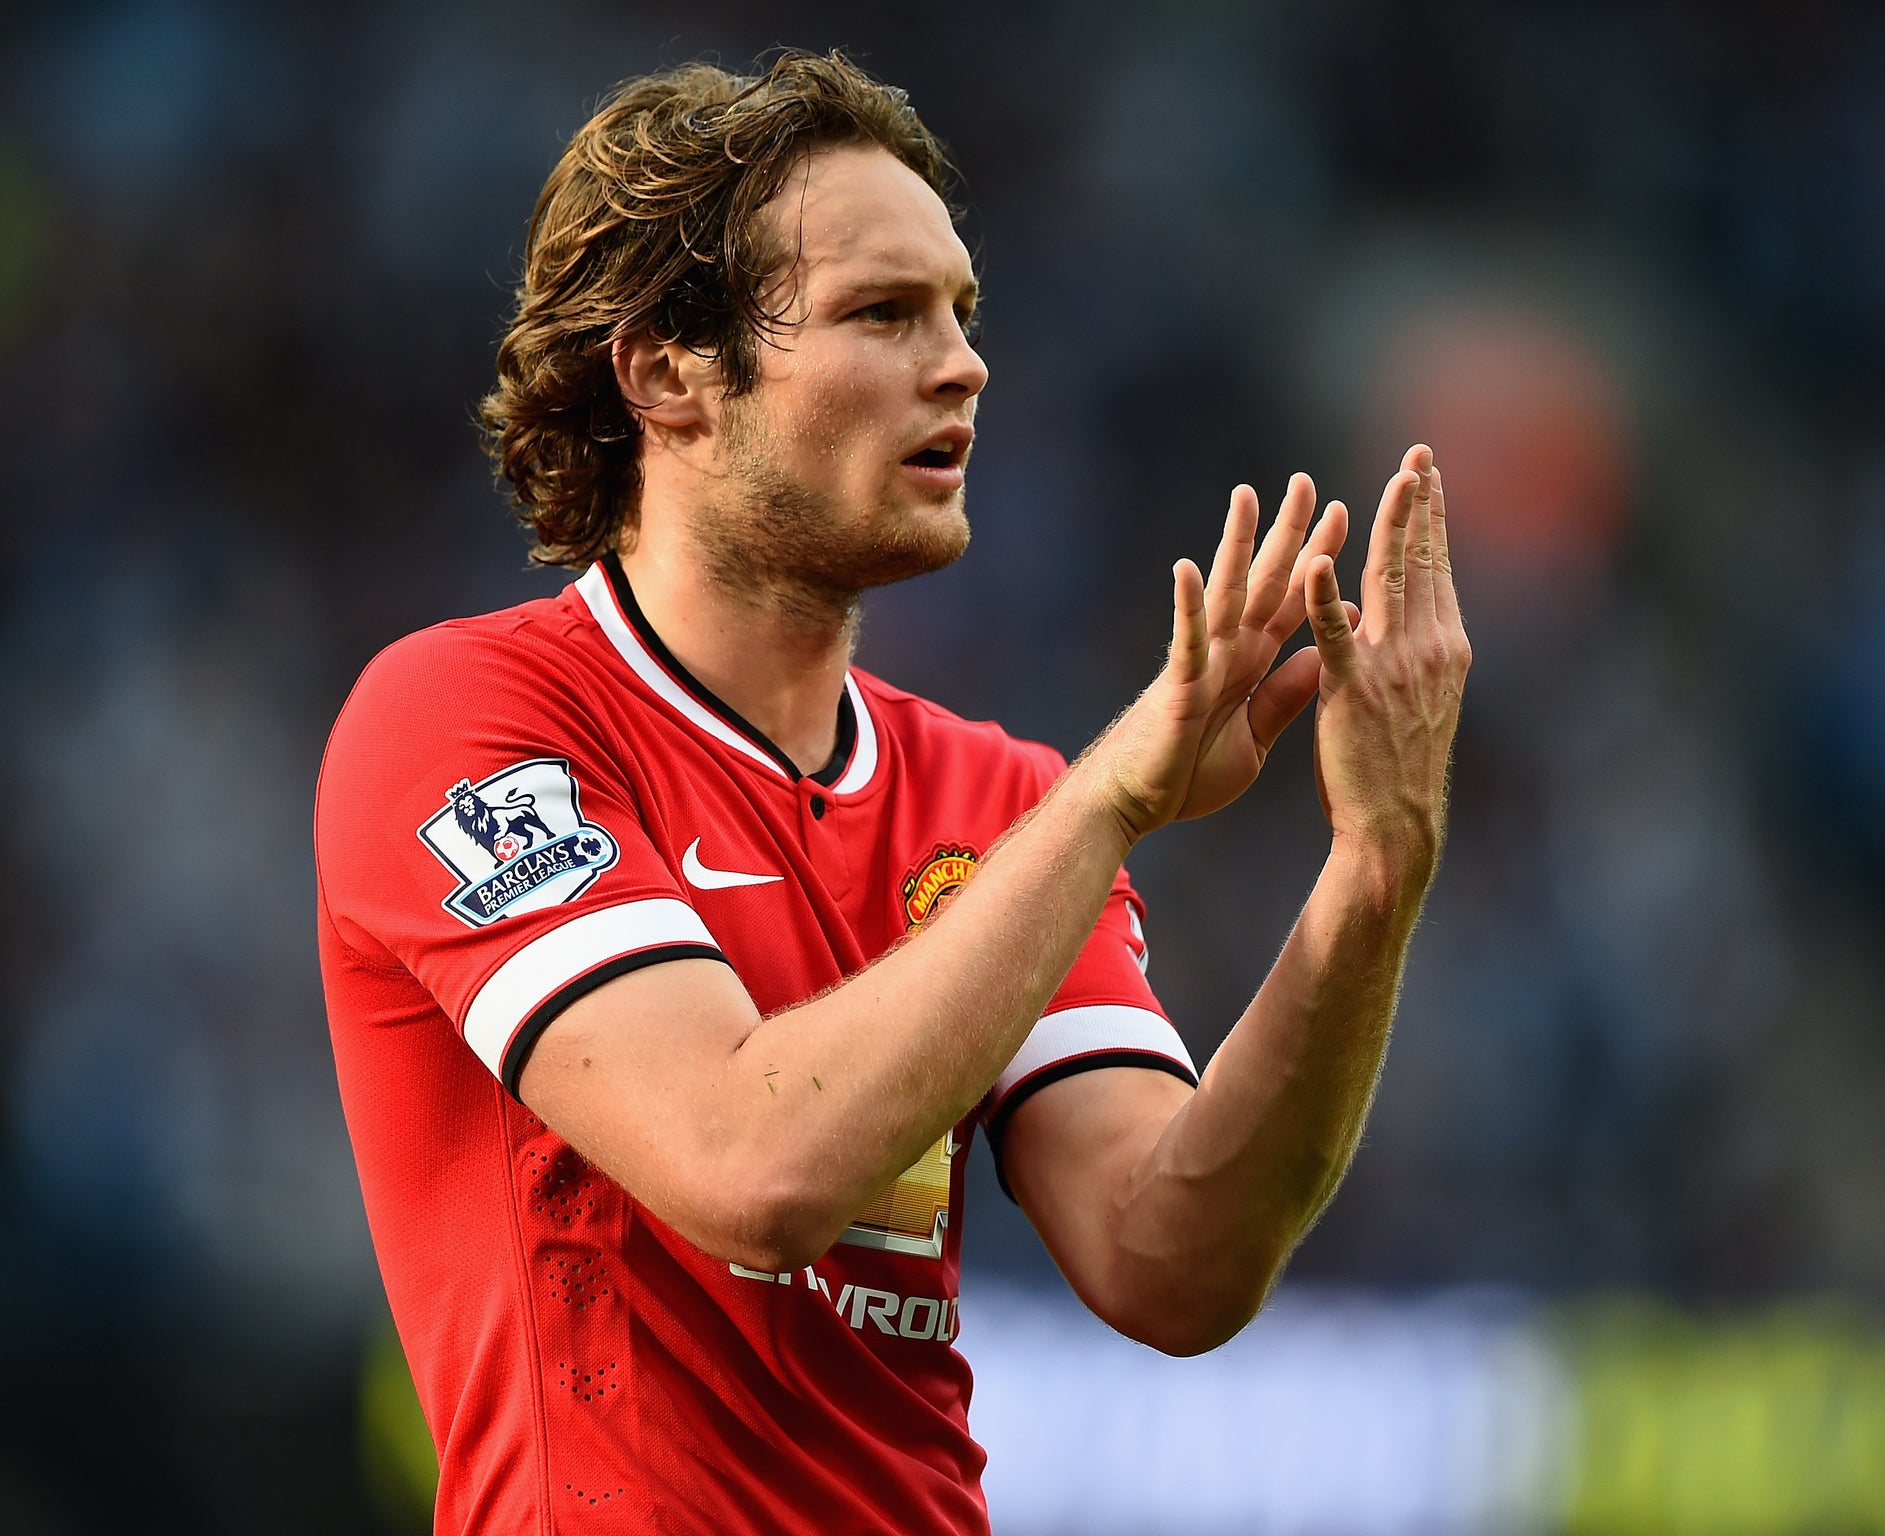 Daley Blind insists he is good enough to play centre back for